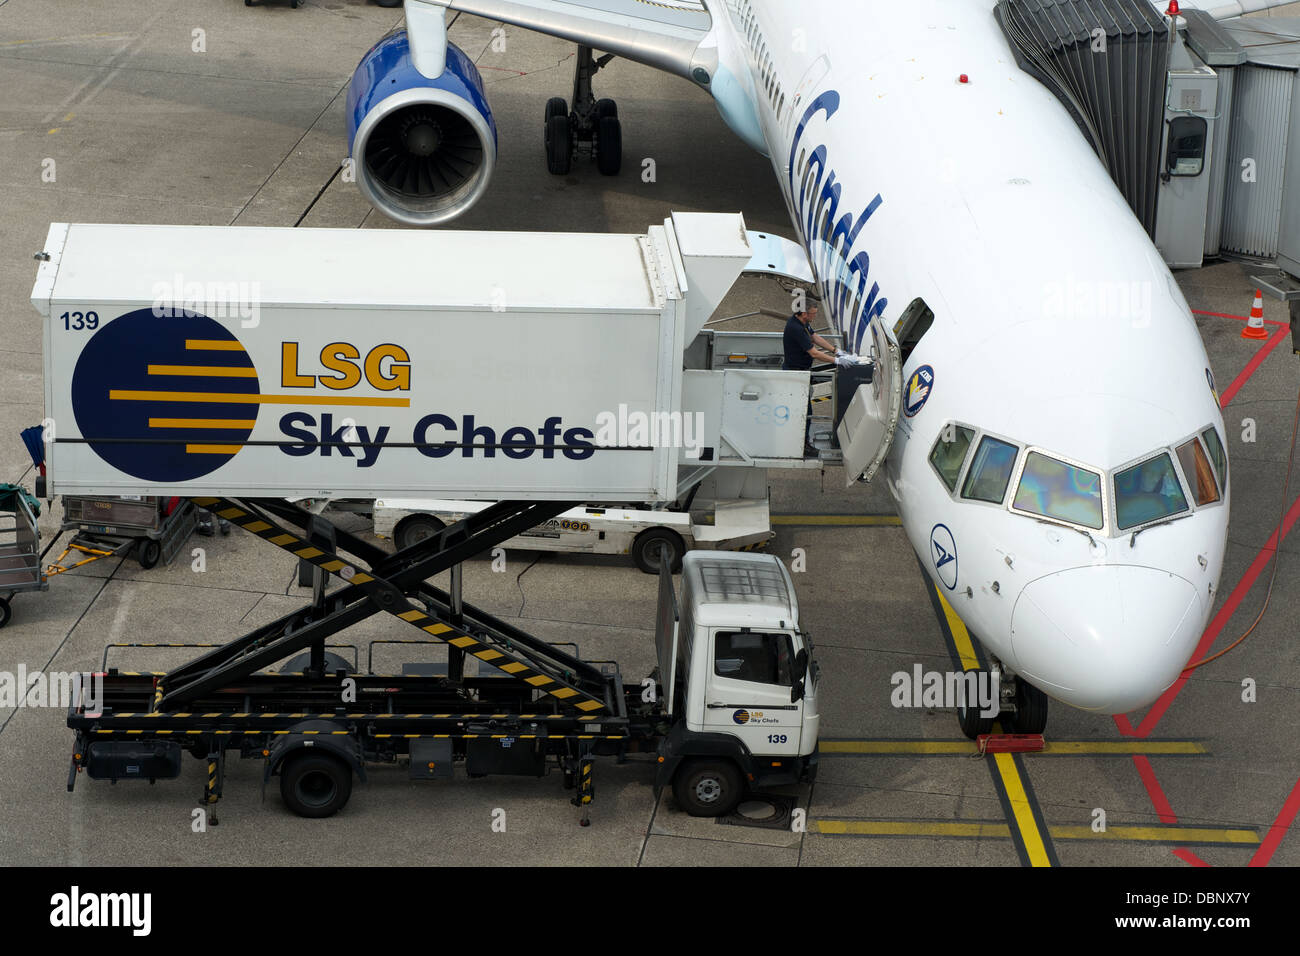 LSG Sky Chefs airline catering Dusseldorf Germany - Stock Image